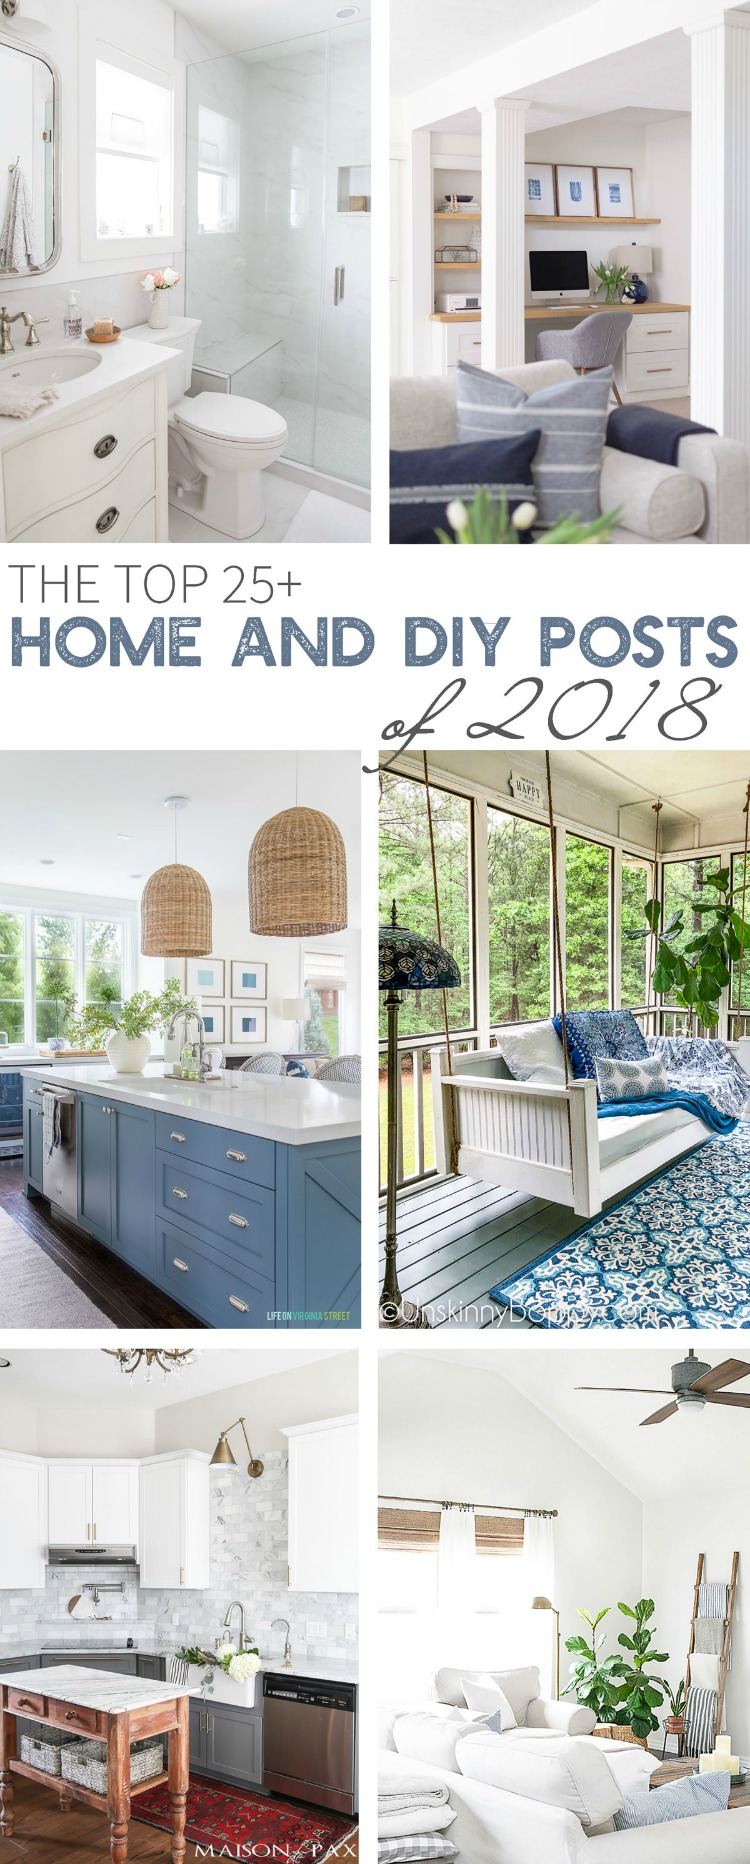 The Top 25+ Home And DIY Posts of 2018